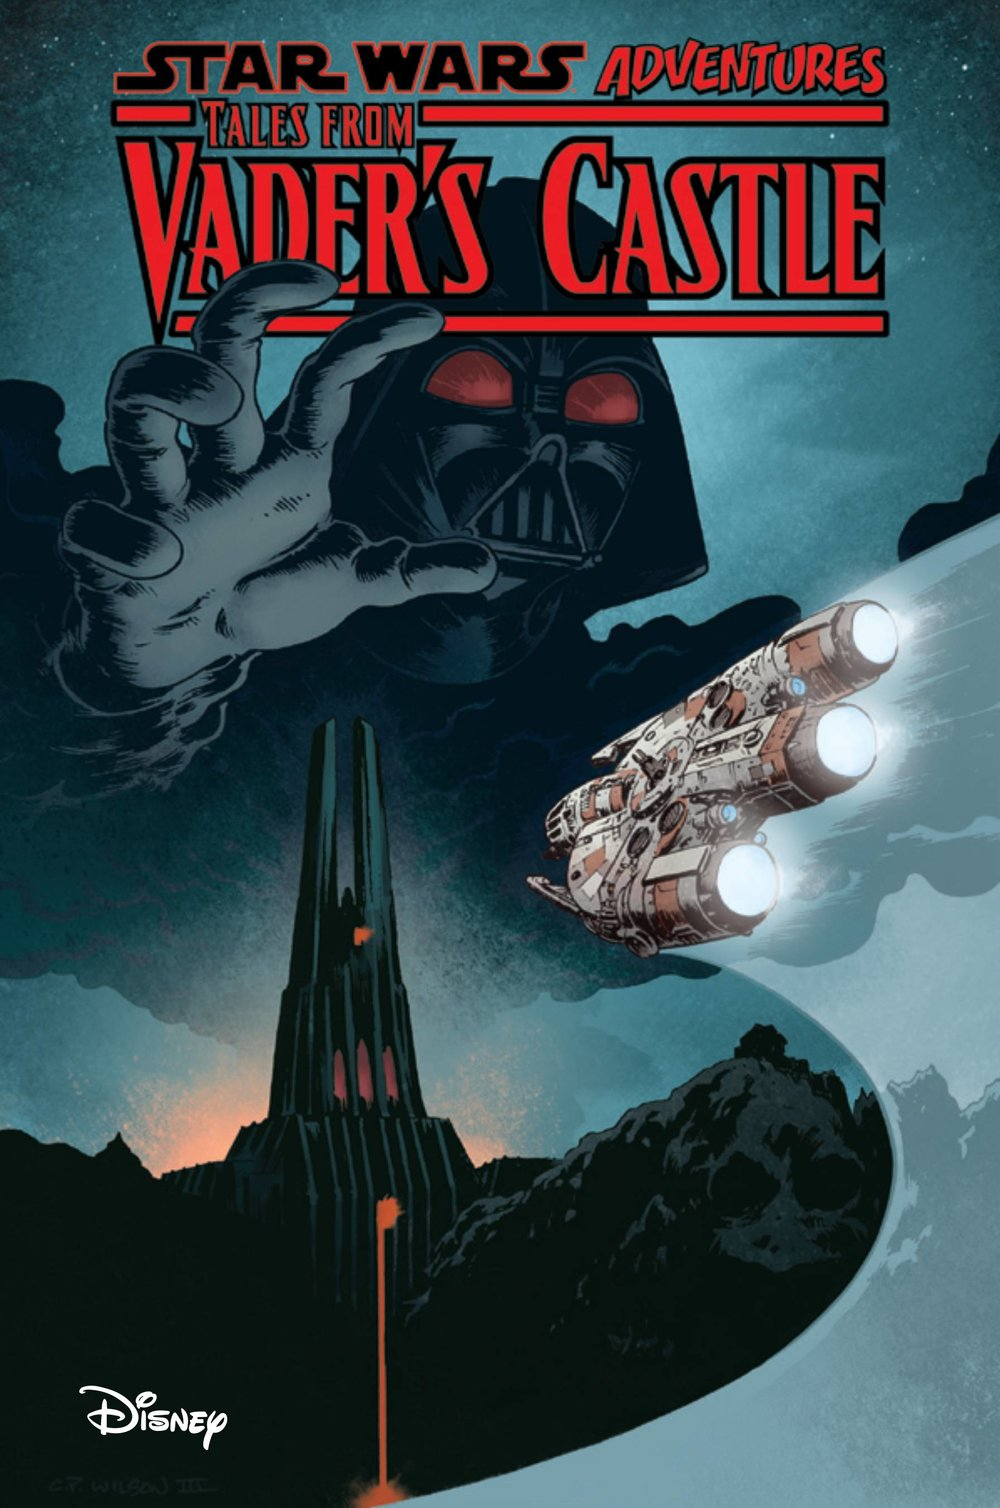 STAR WARS ADV TALES FROM VADERS CASTLE TP MAY THE 4TH VAR.jpg